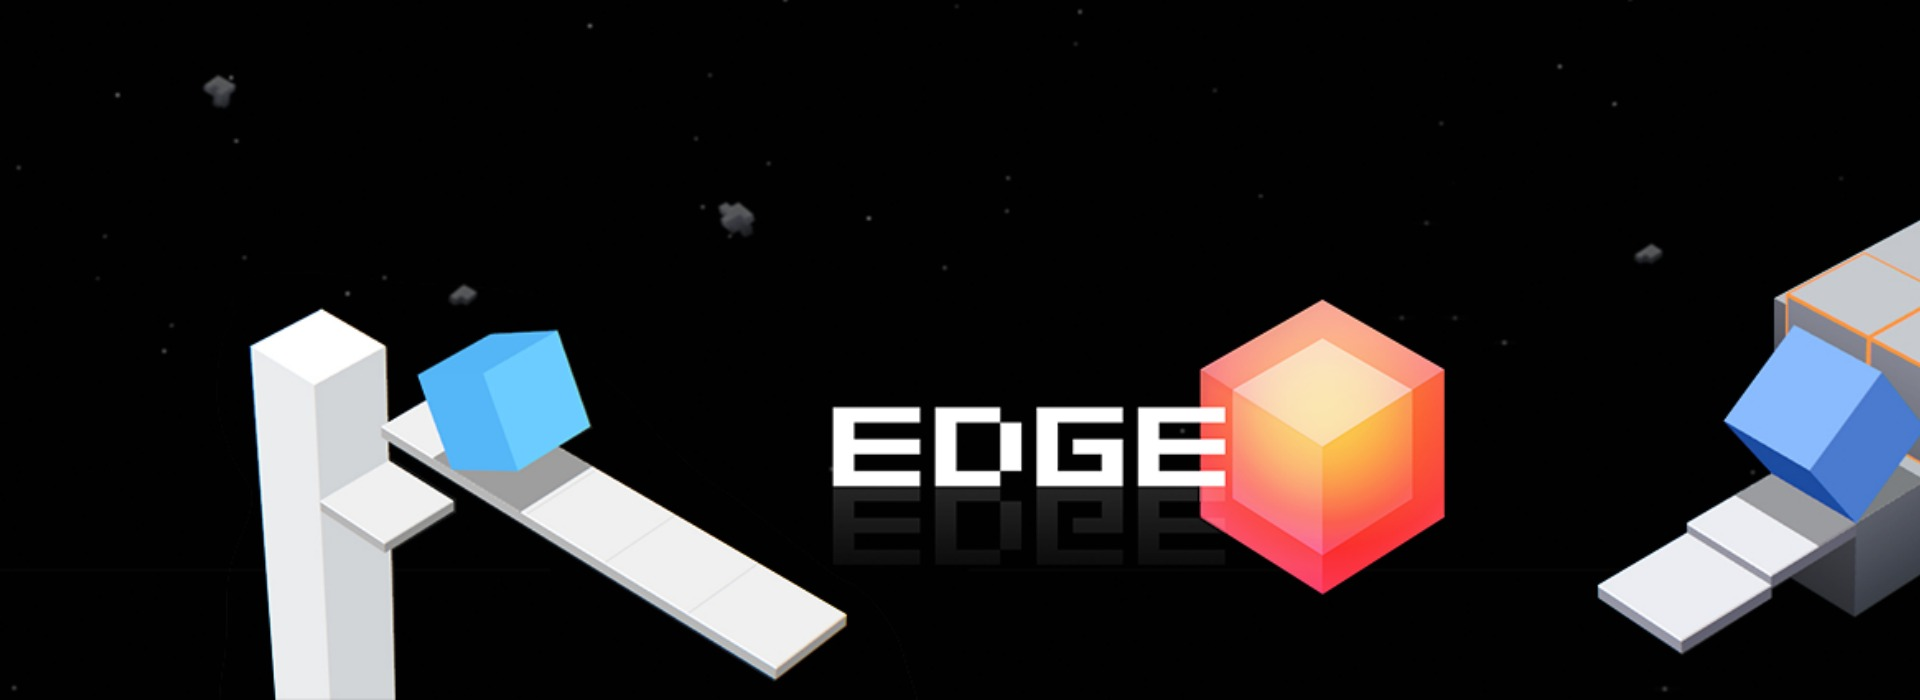 edge-review-banner